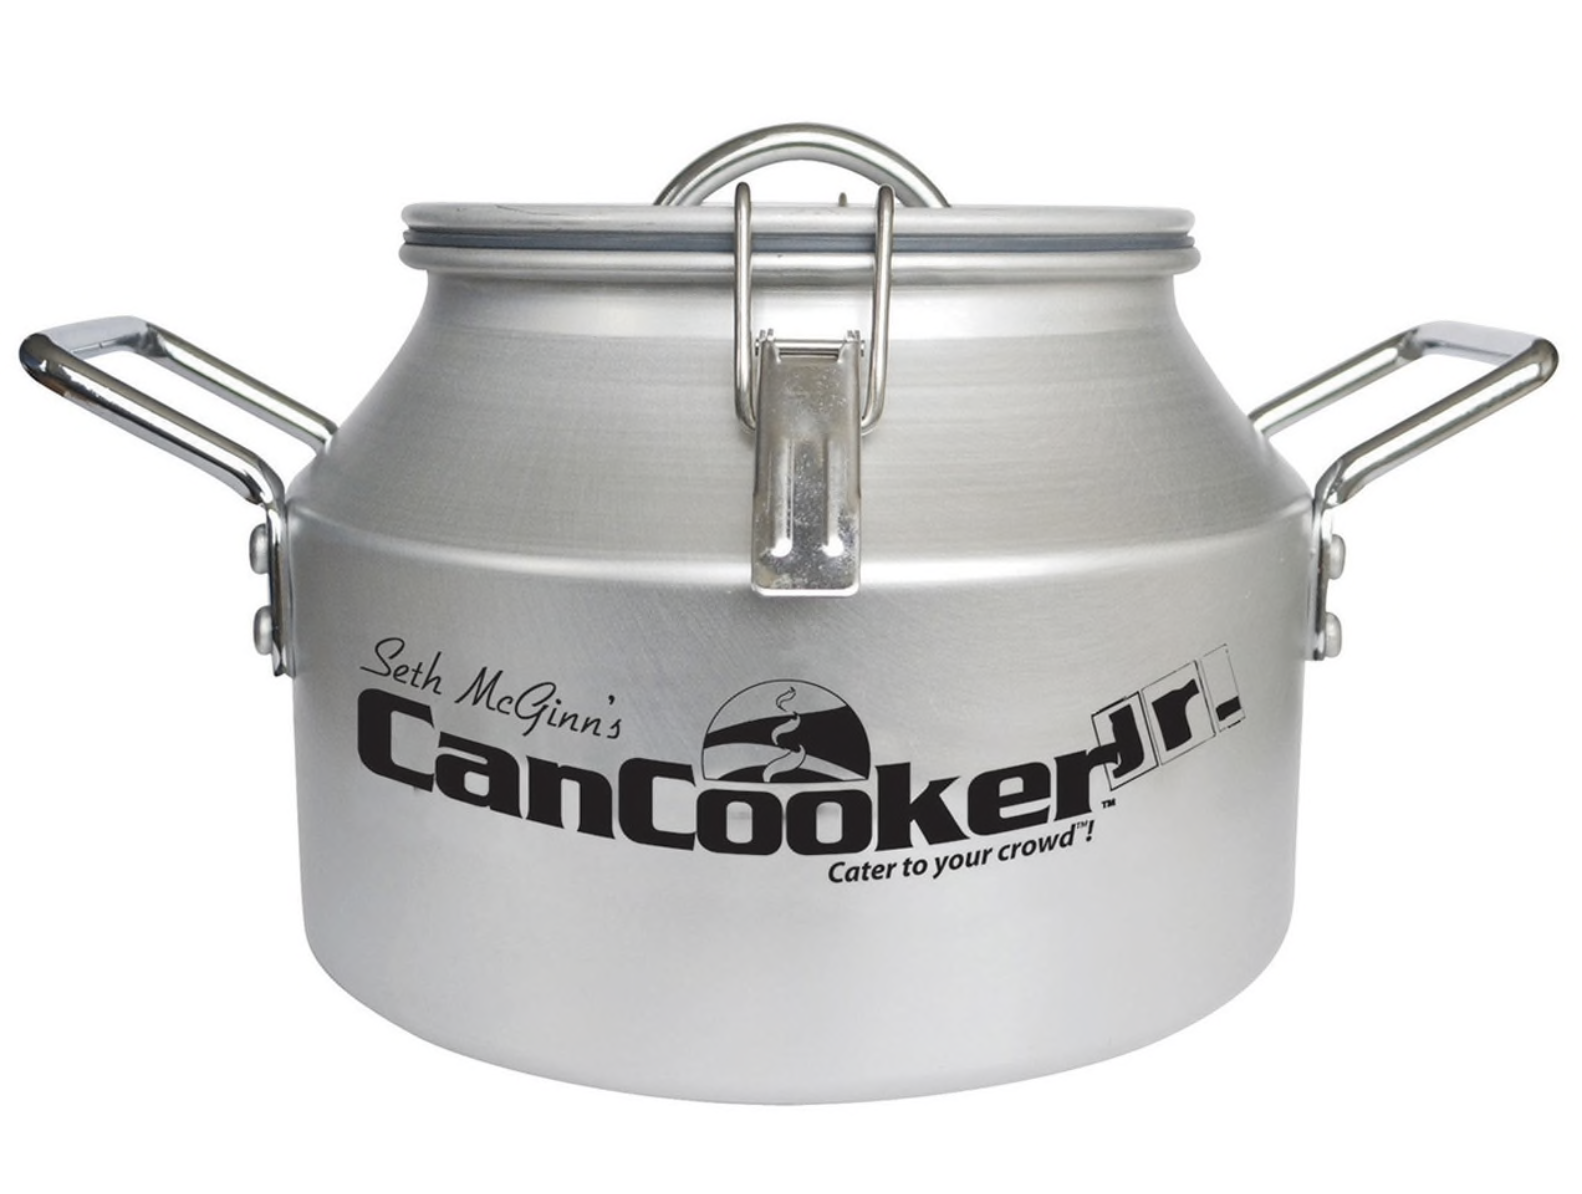 Seth McGinn's CanCooker Jr